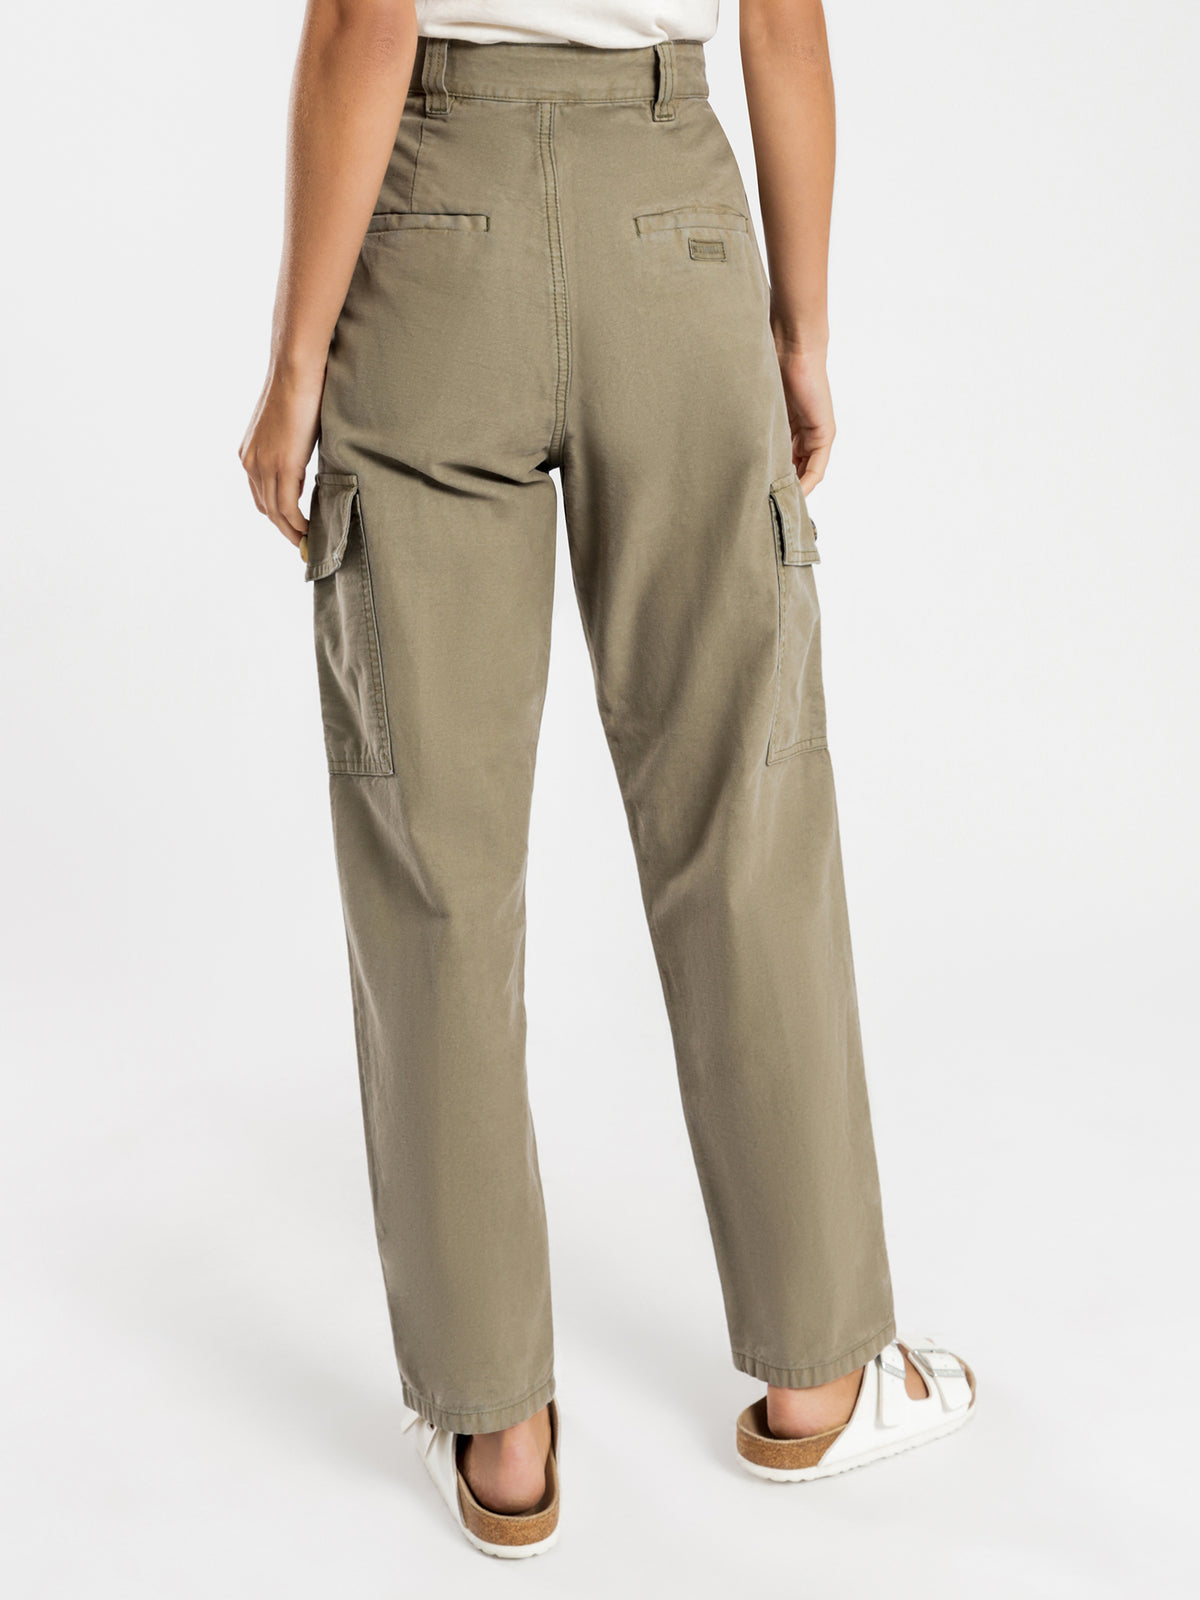 Cargo Pants in Army Green